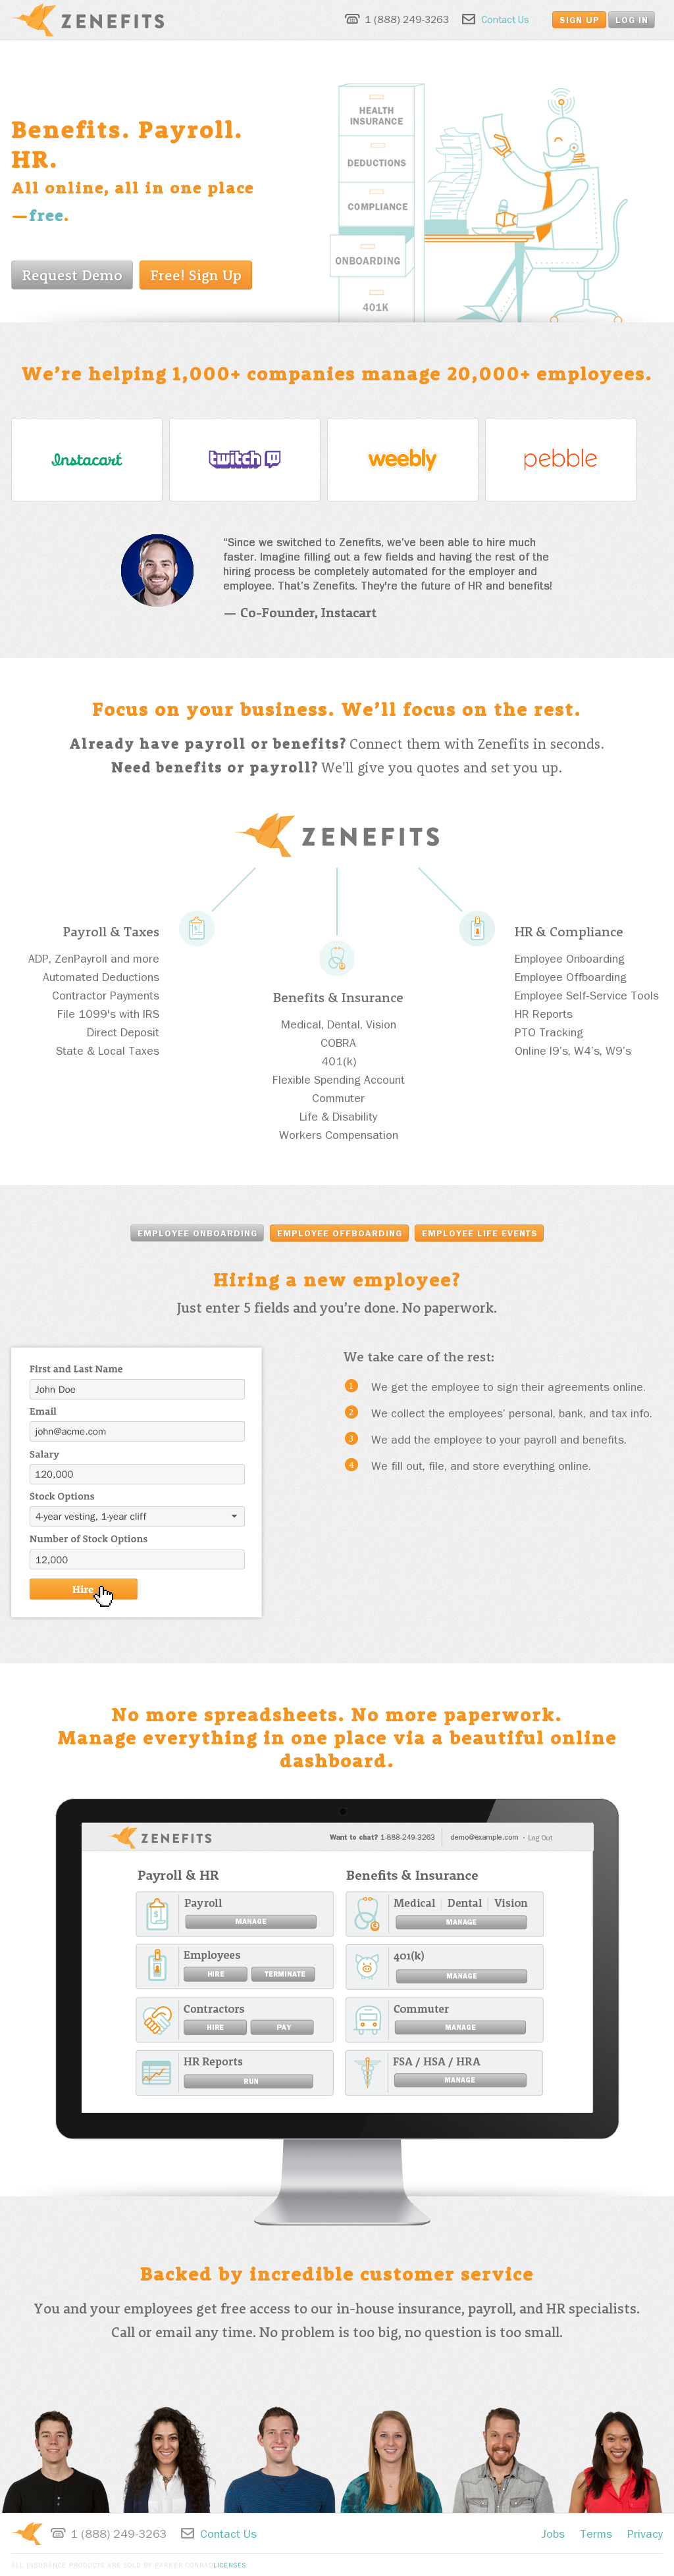 Zenefits Competitors, Revenue and Employees - Owler Company Profile